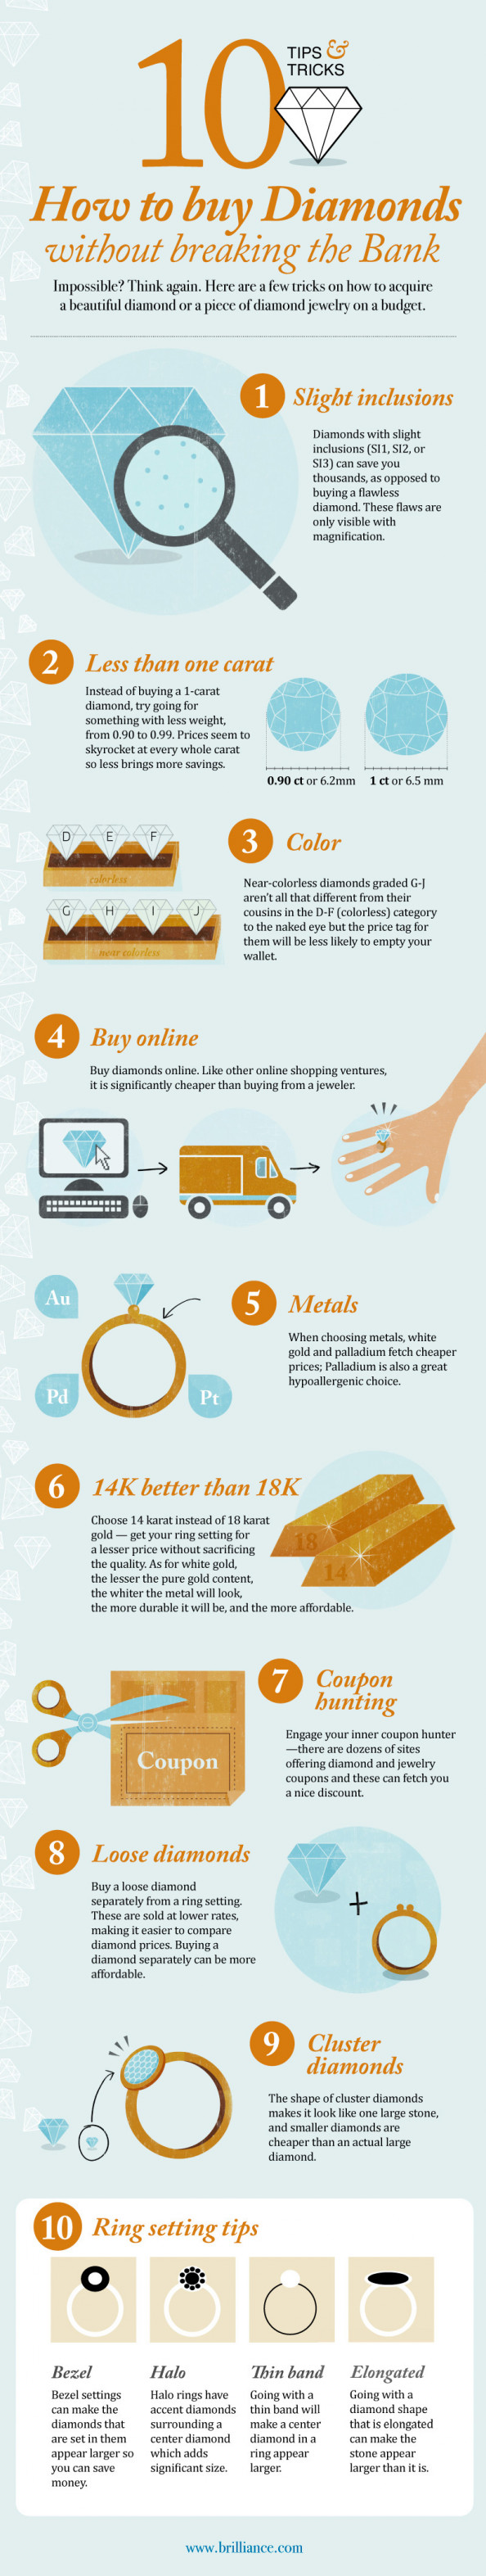 Top 10 Diamond Buying Tips to save You $$$$4 Infographic